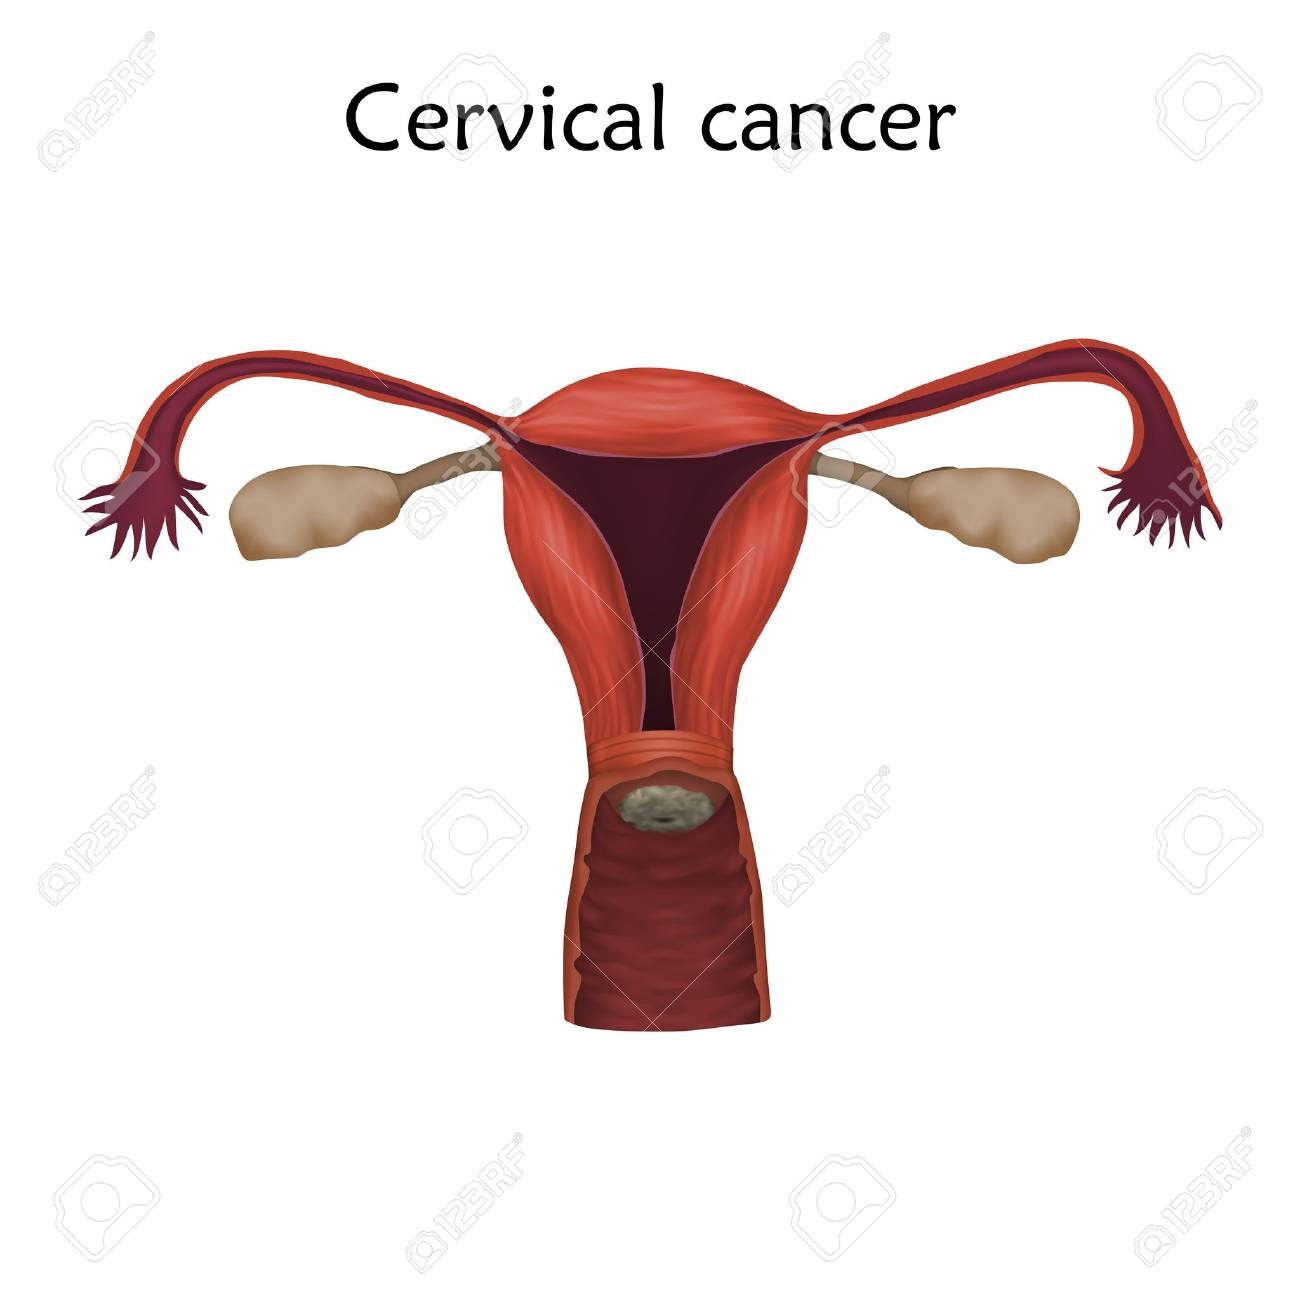 Cervical Cancer Illustration With Human Realistic Uterus And